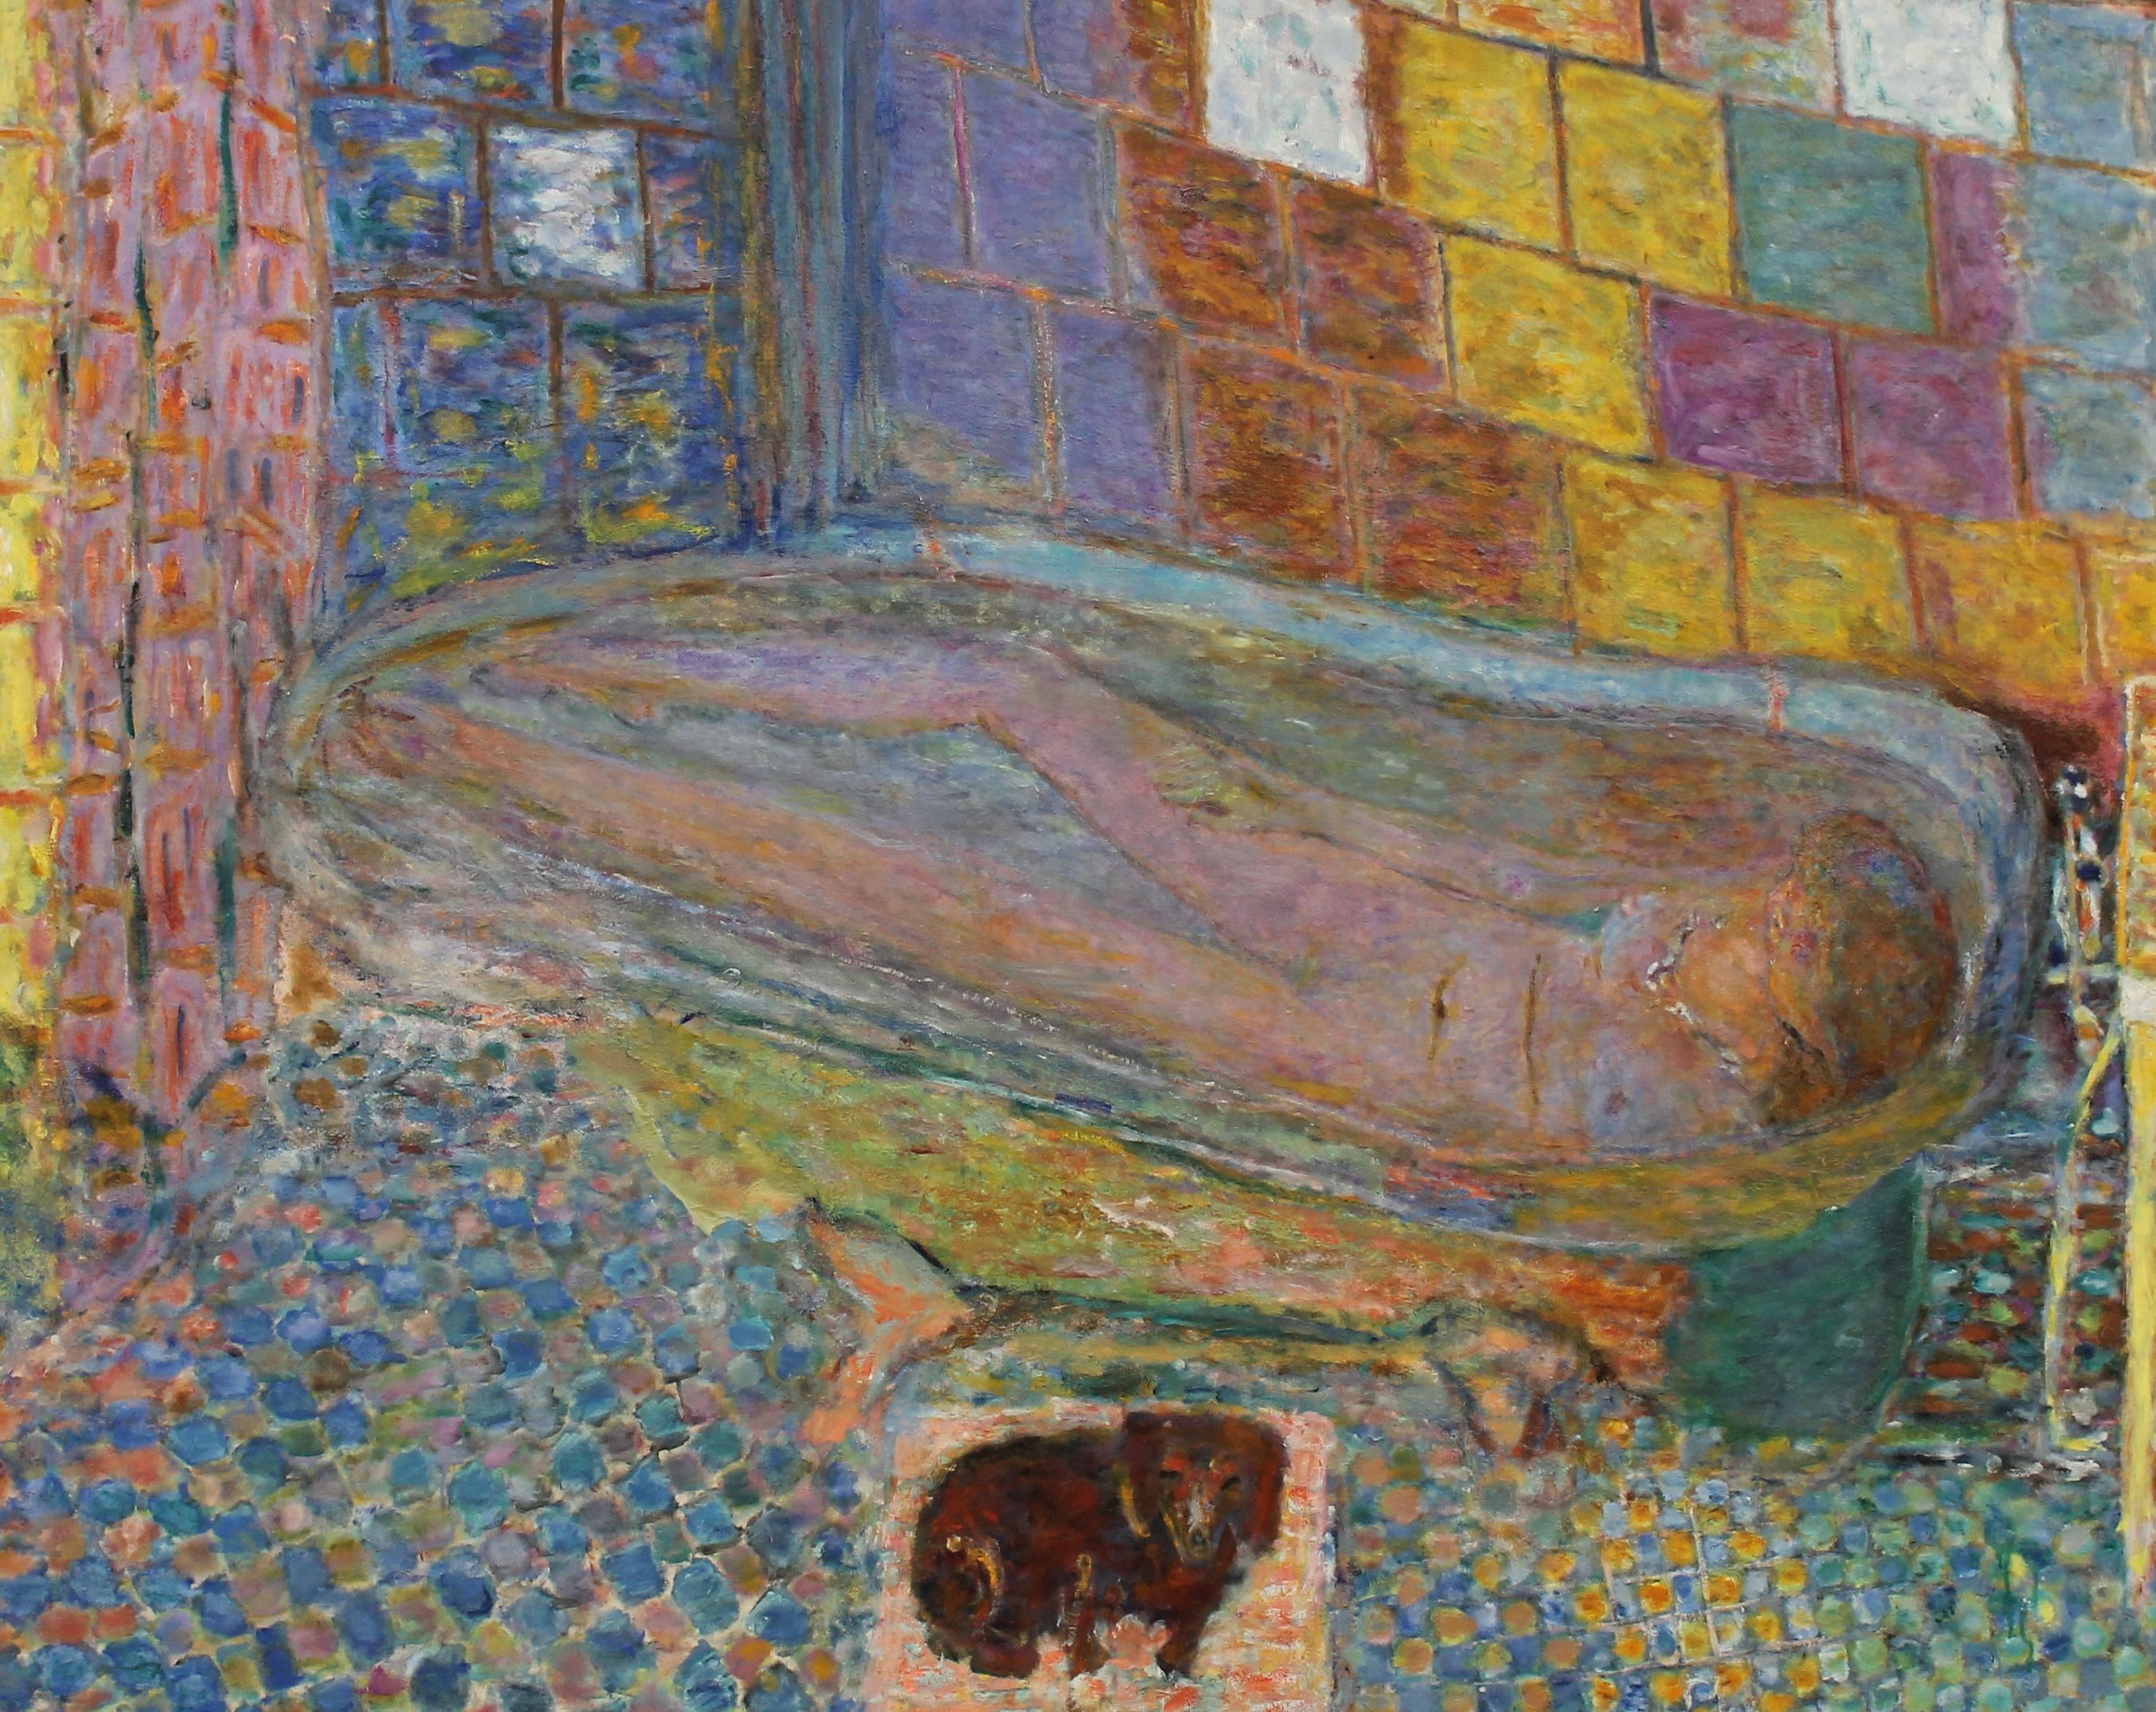 This may be my favorite painting.  I love the beautiful colors, the shapes, the little dachsund waiting at the base of the bathtub.  Carnegie Museum, Pgh